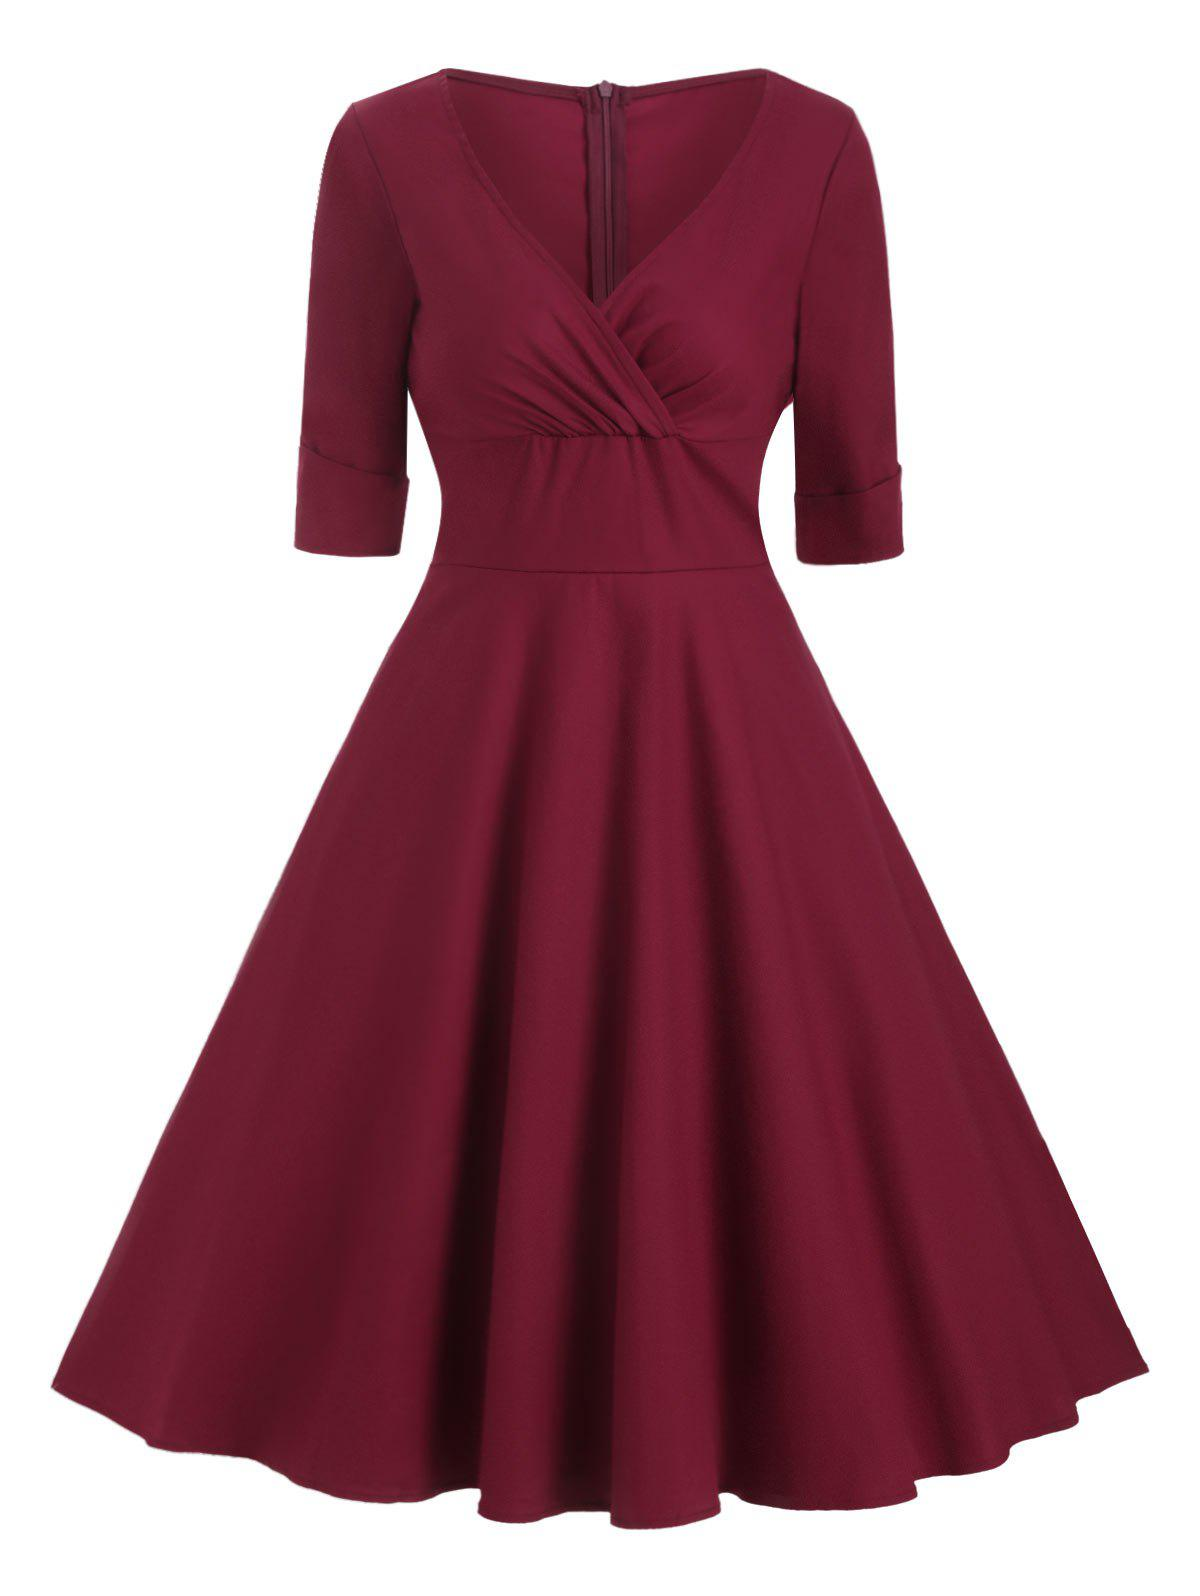 Cuffed Sleeves Solid A Line Dress - RED WINE S